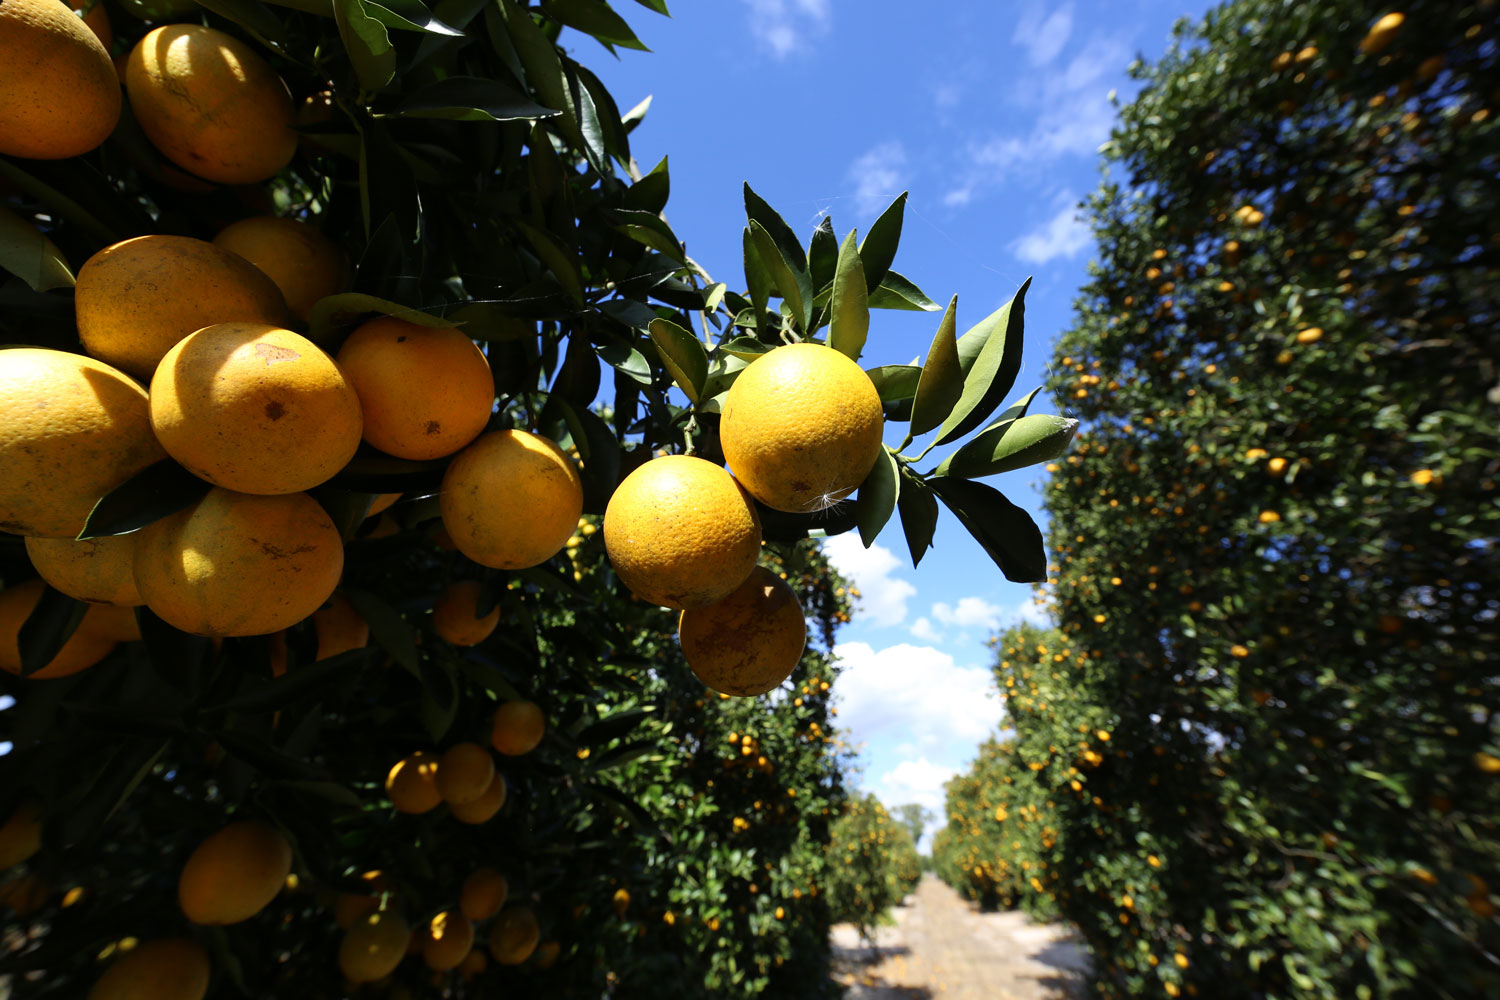 LAND-JOURNAL-Blog-Awareness-Nothing-Says-Florida-Like-Citrus-2019